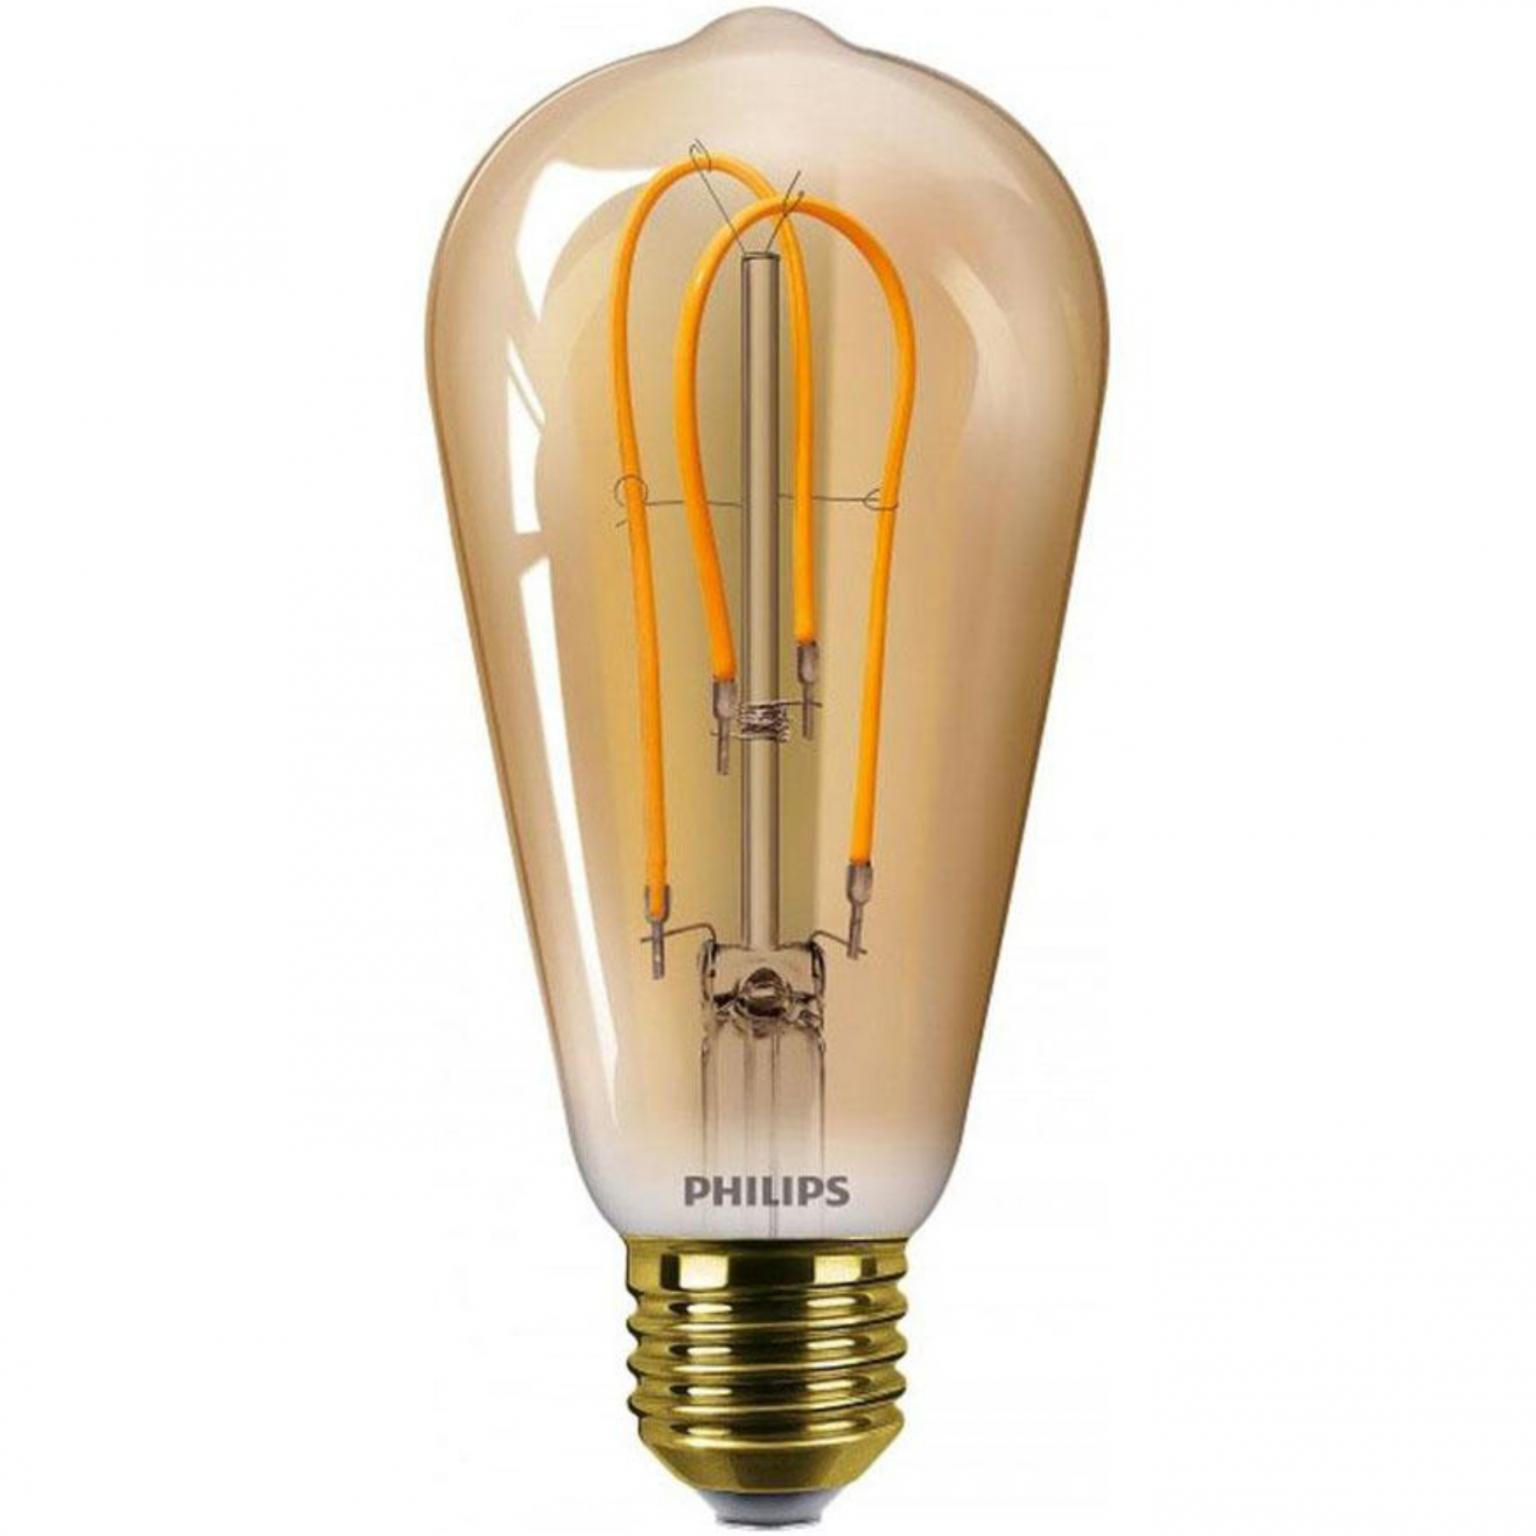 Filament Lamp - 250 lumen - Philips